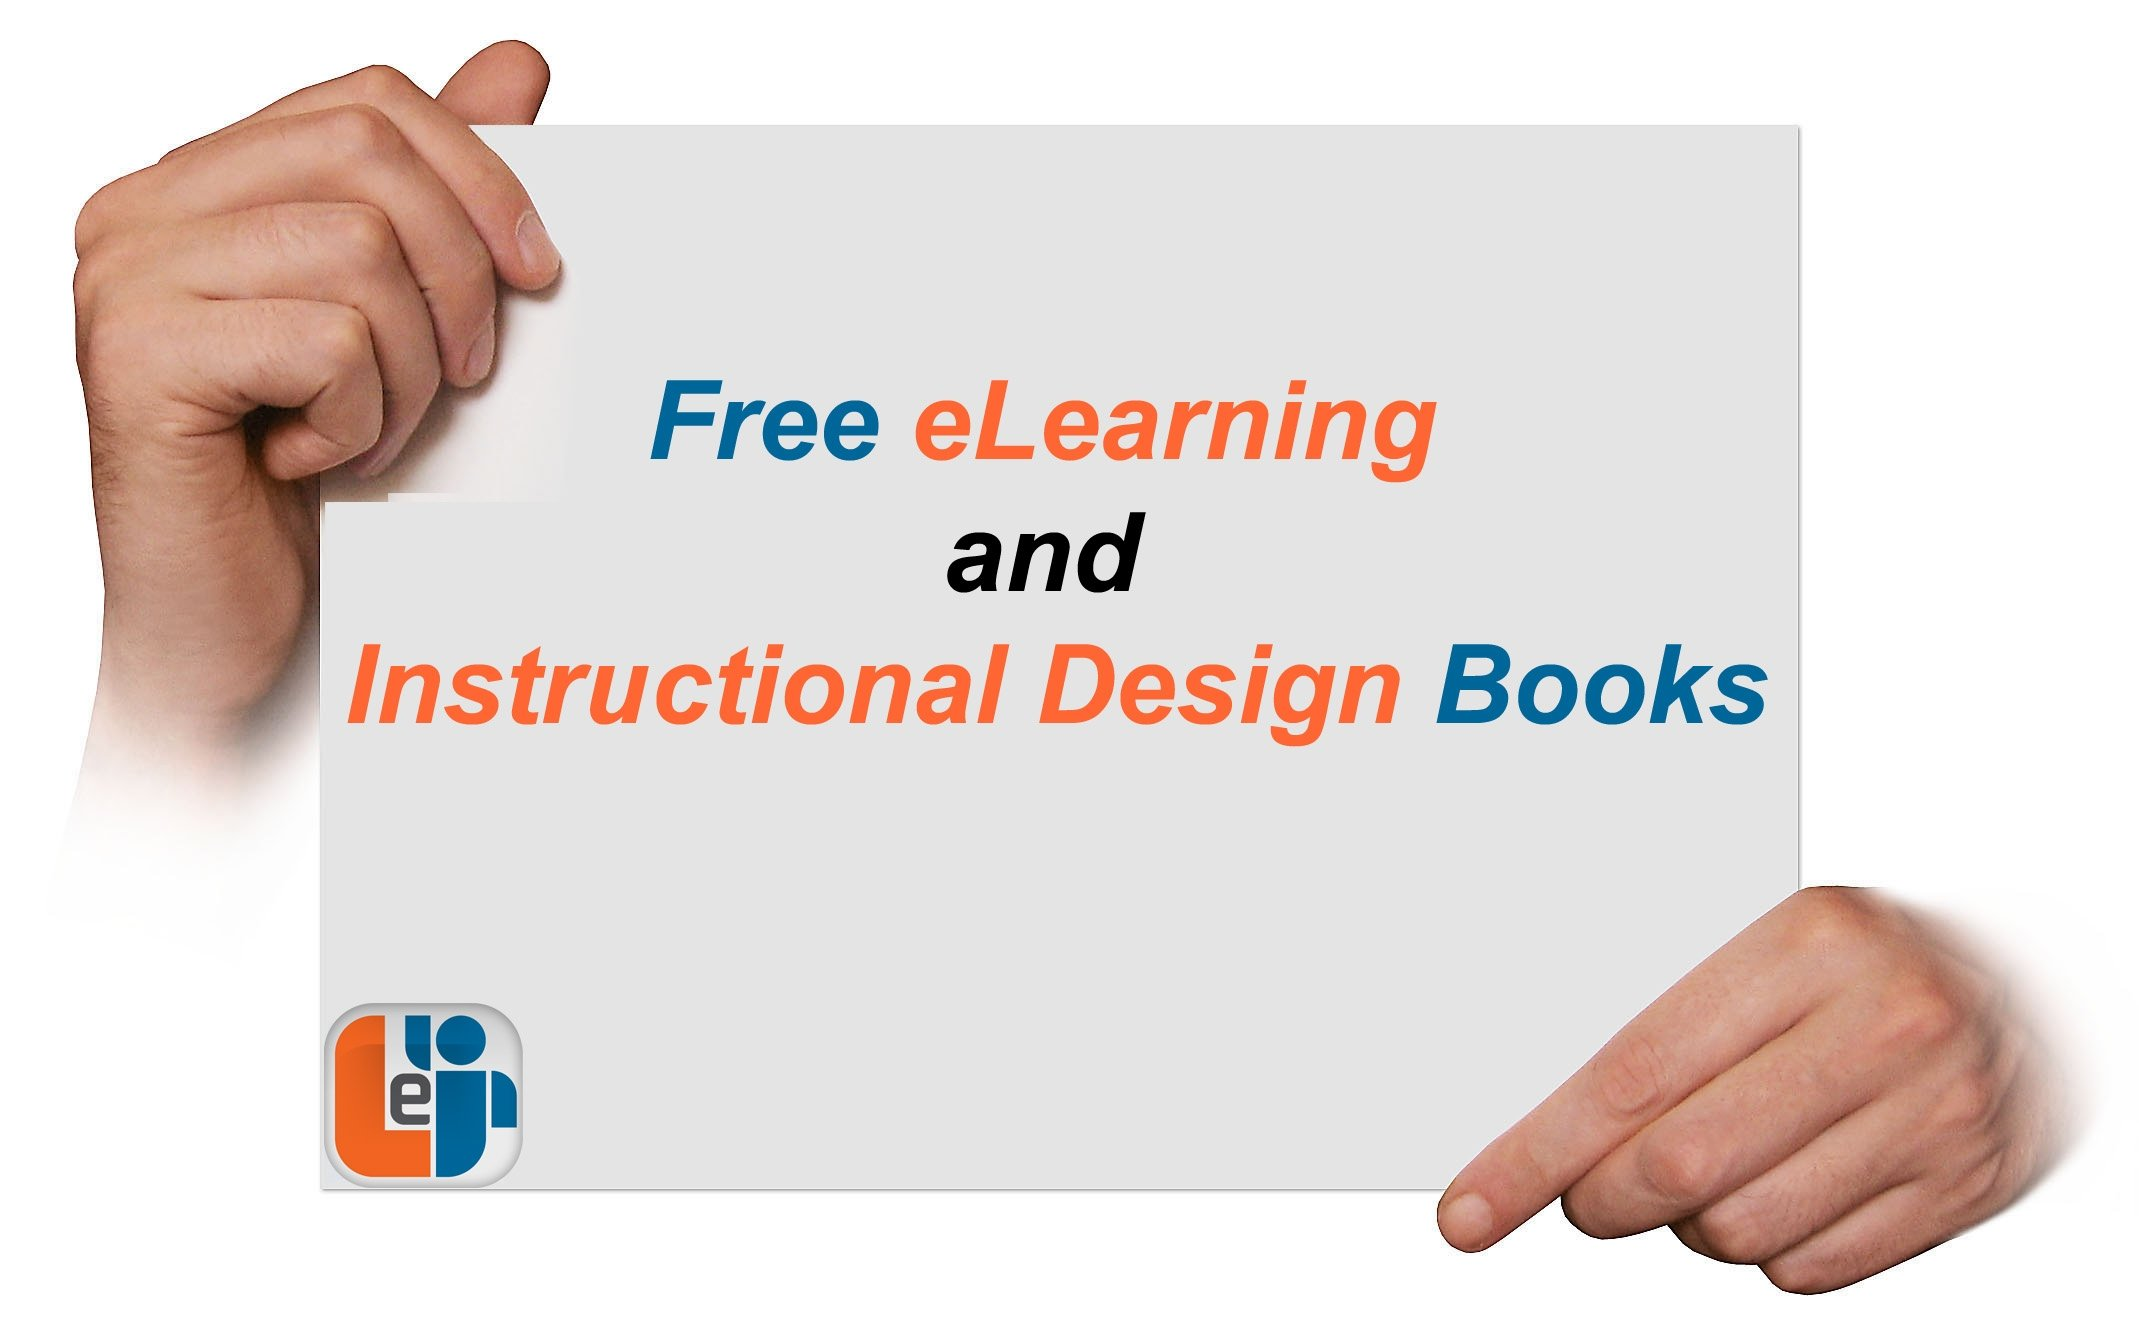 Free eLearning And Instructional Design Books - eLearning